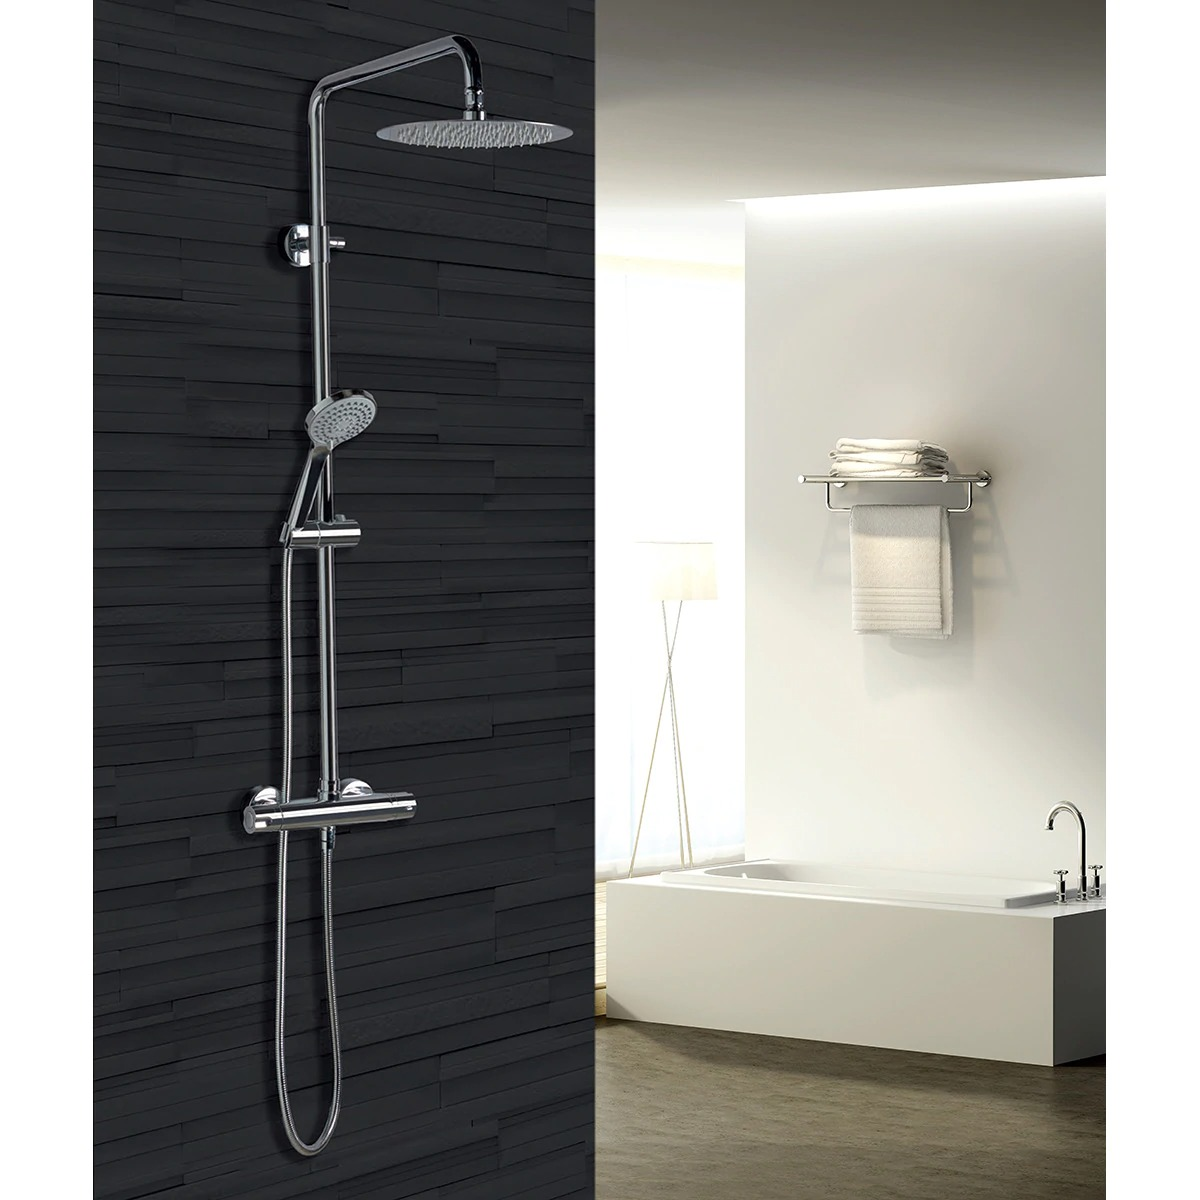 Bled Imex thermostatic shower set